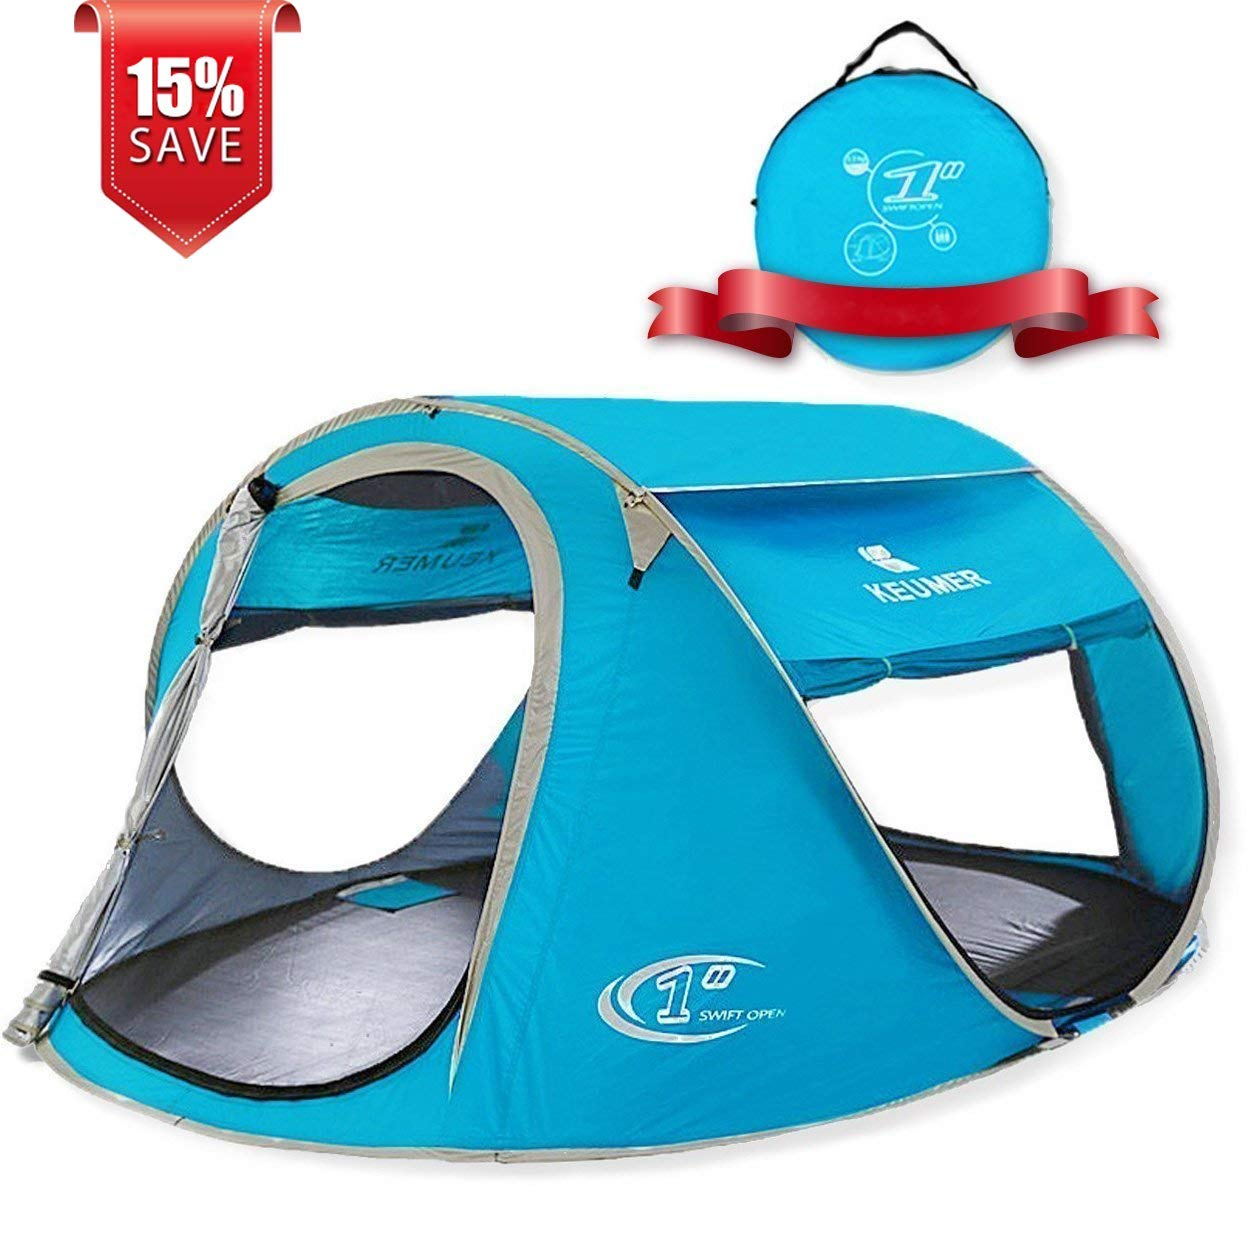 ZOMAKE Pop Up Tent 4 Person Beach Tent